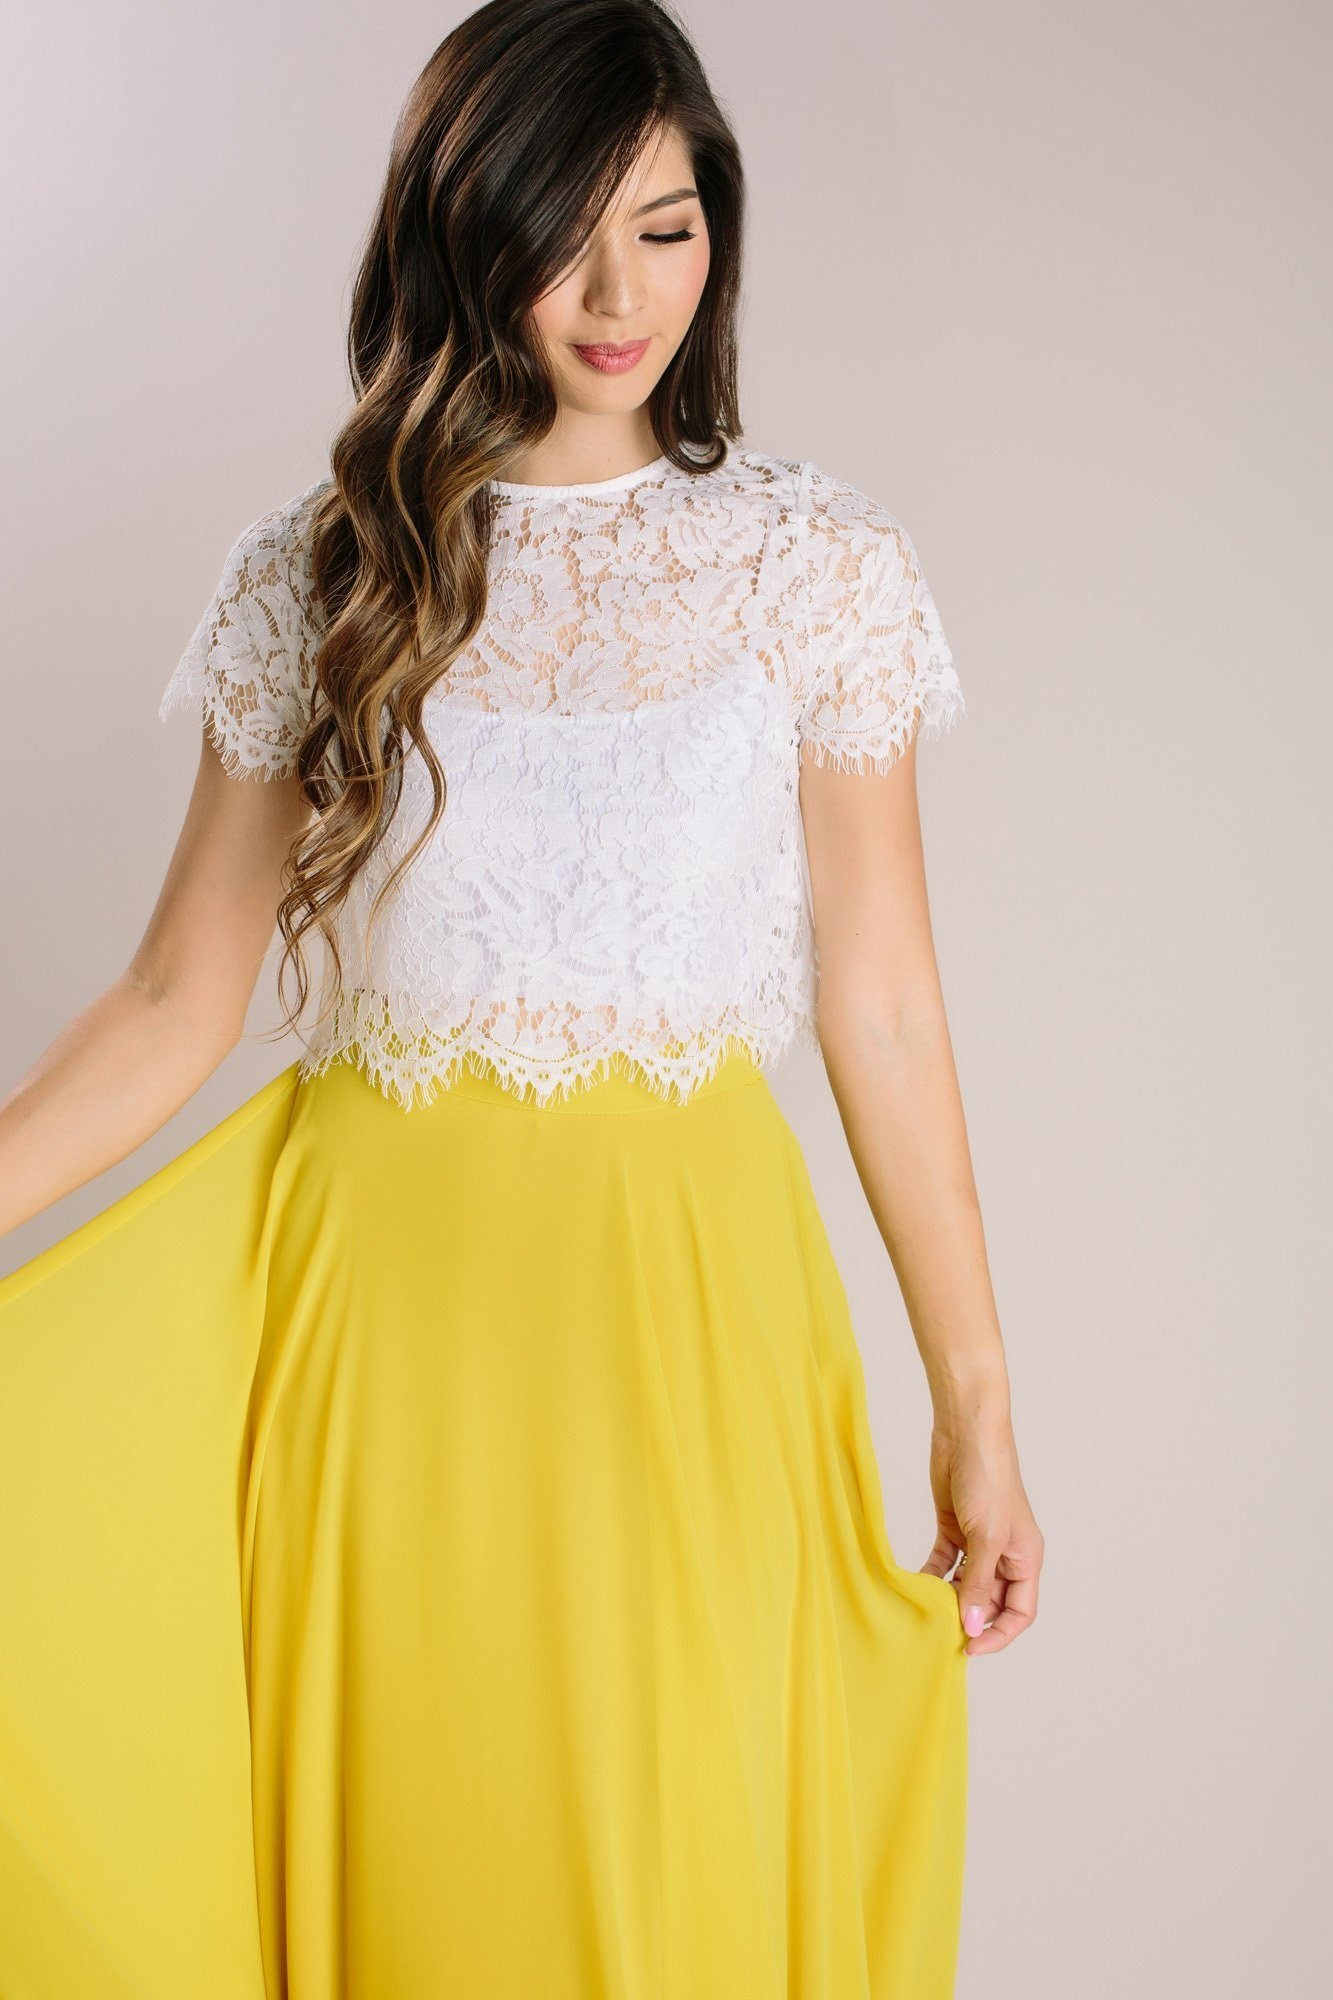 Camille Ivory Short Sleeve Lace Top by Morning Lavender